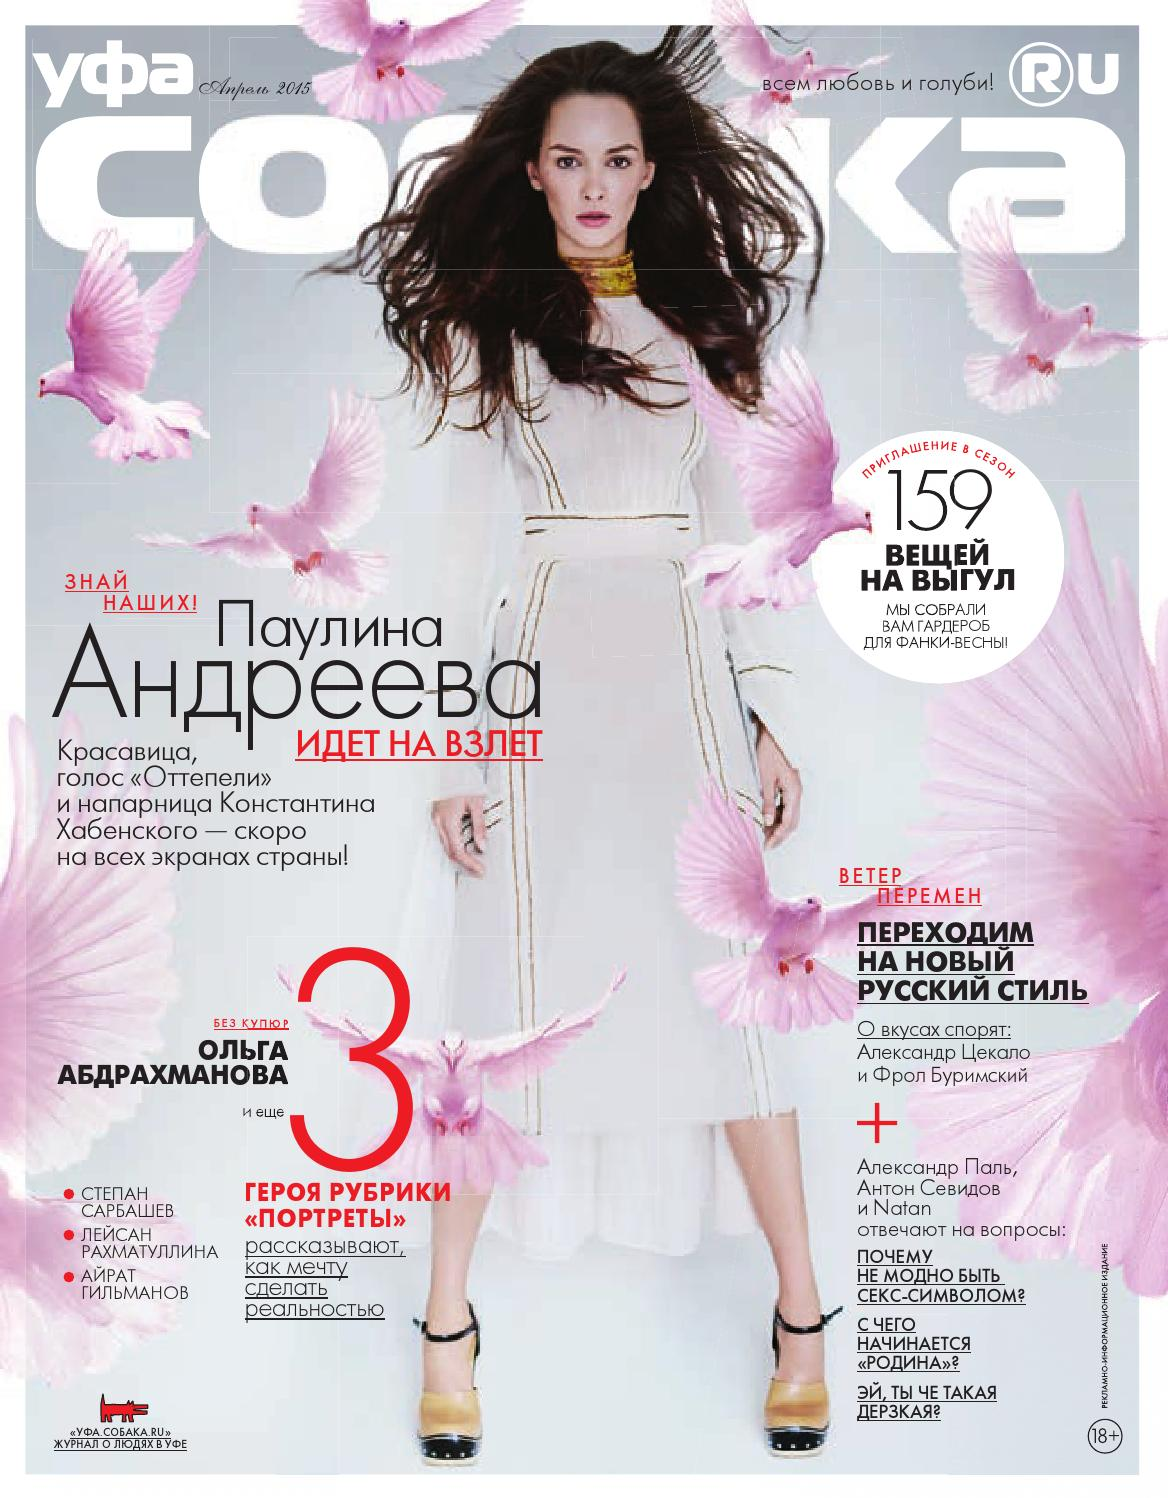 Sobaka april 2015 by Allen Enikeev - issuu 783c2a2f901a6